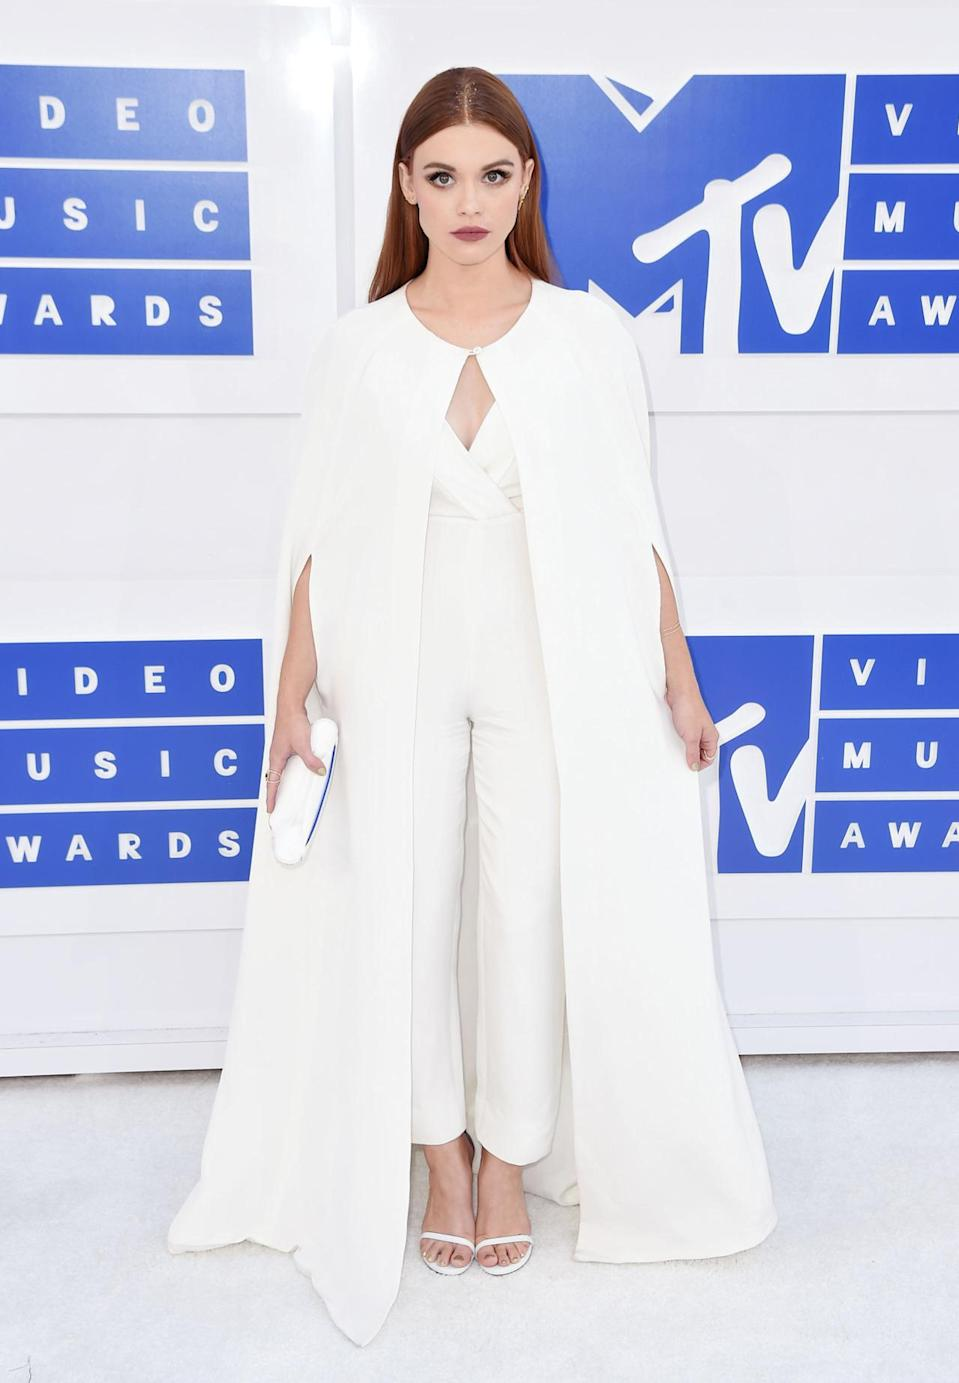 <p>The most popular style on red carpets recently has been rocking a white train — see Katy Perry, Solange Knowles, Lady Gaga, and more. Holland Roden hopped on the train by wearing one with a jumpsuit. <i>(Photo: Getty Images)</i></p>